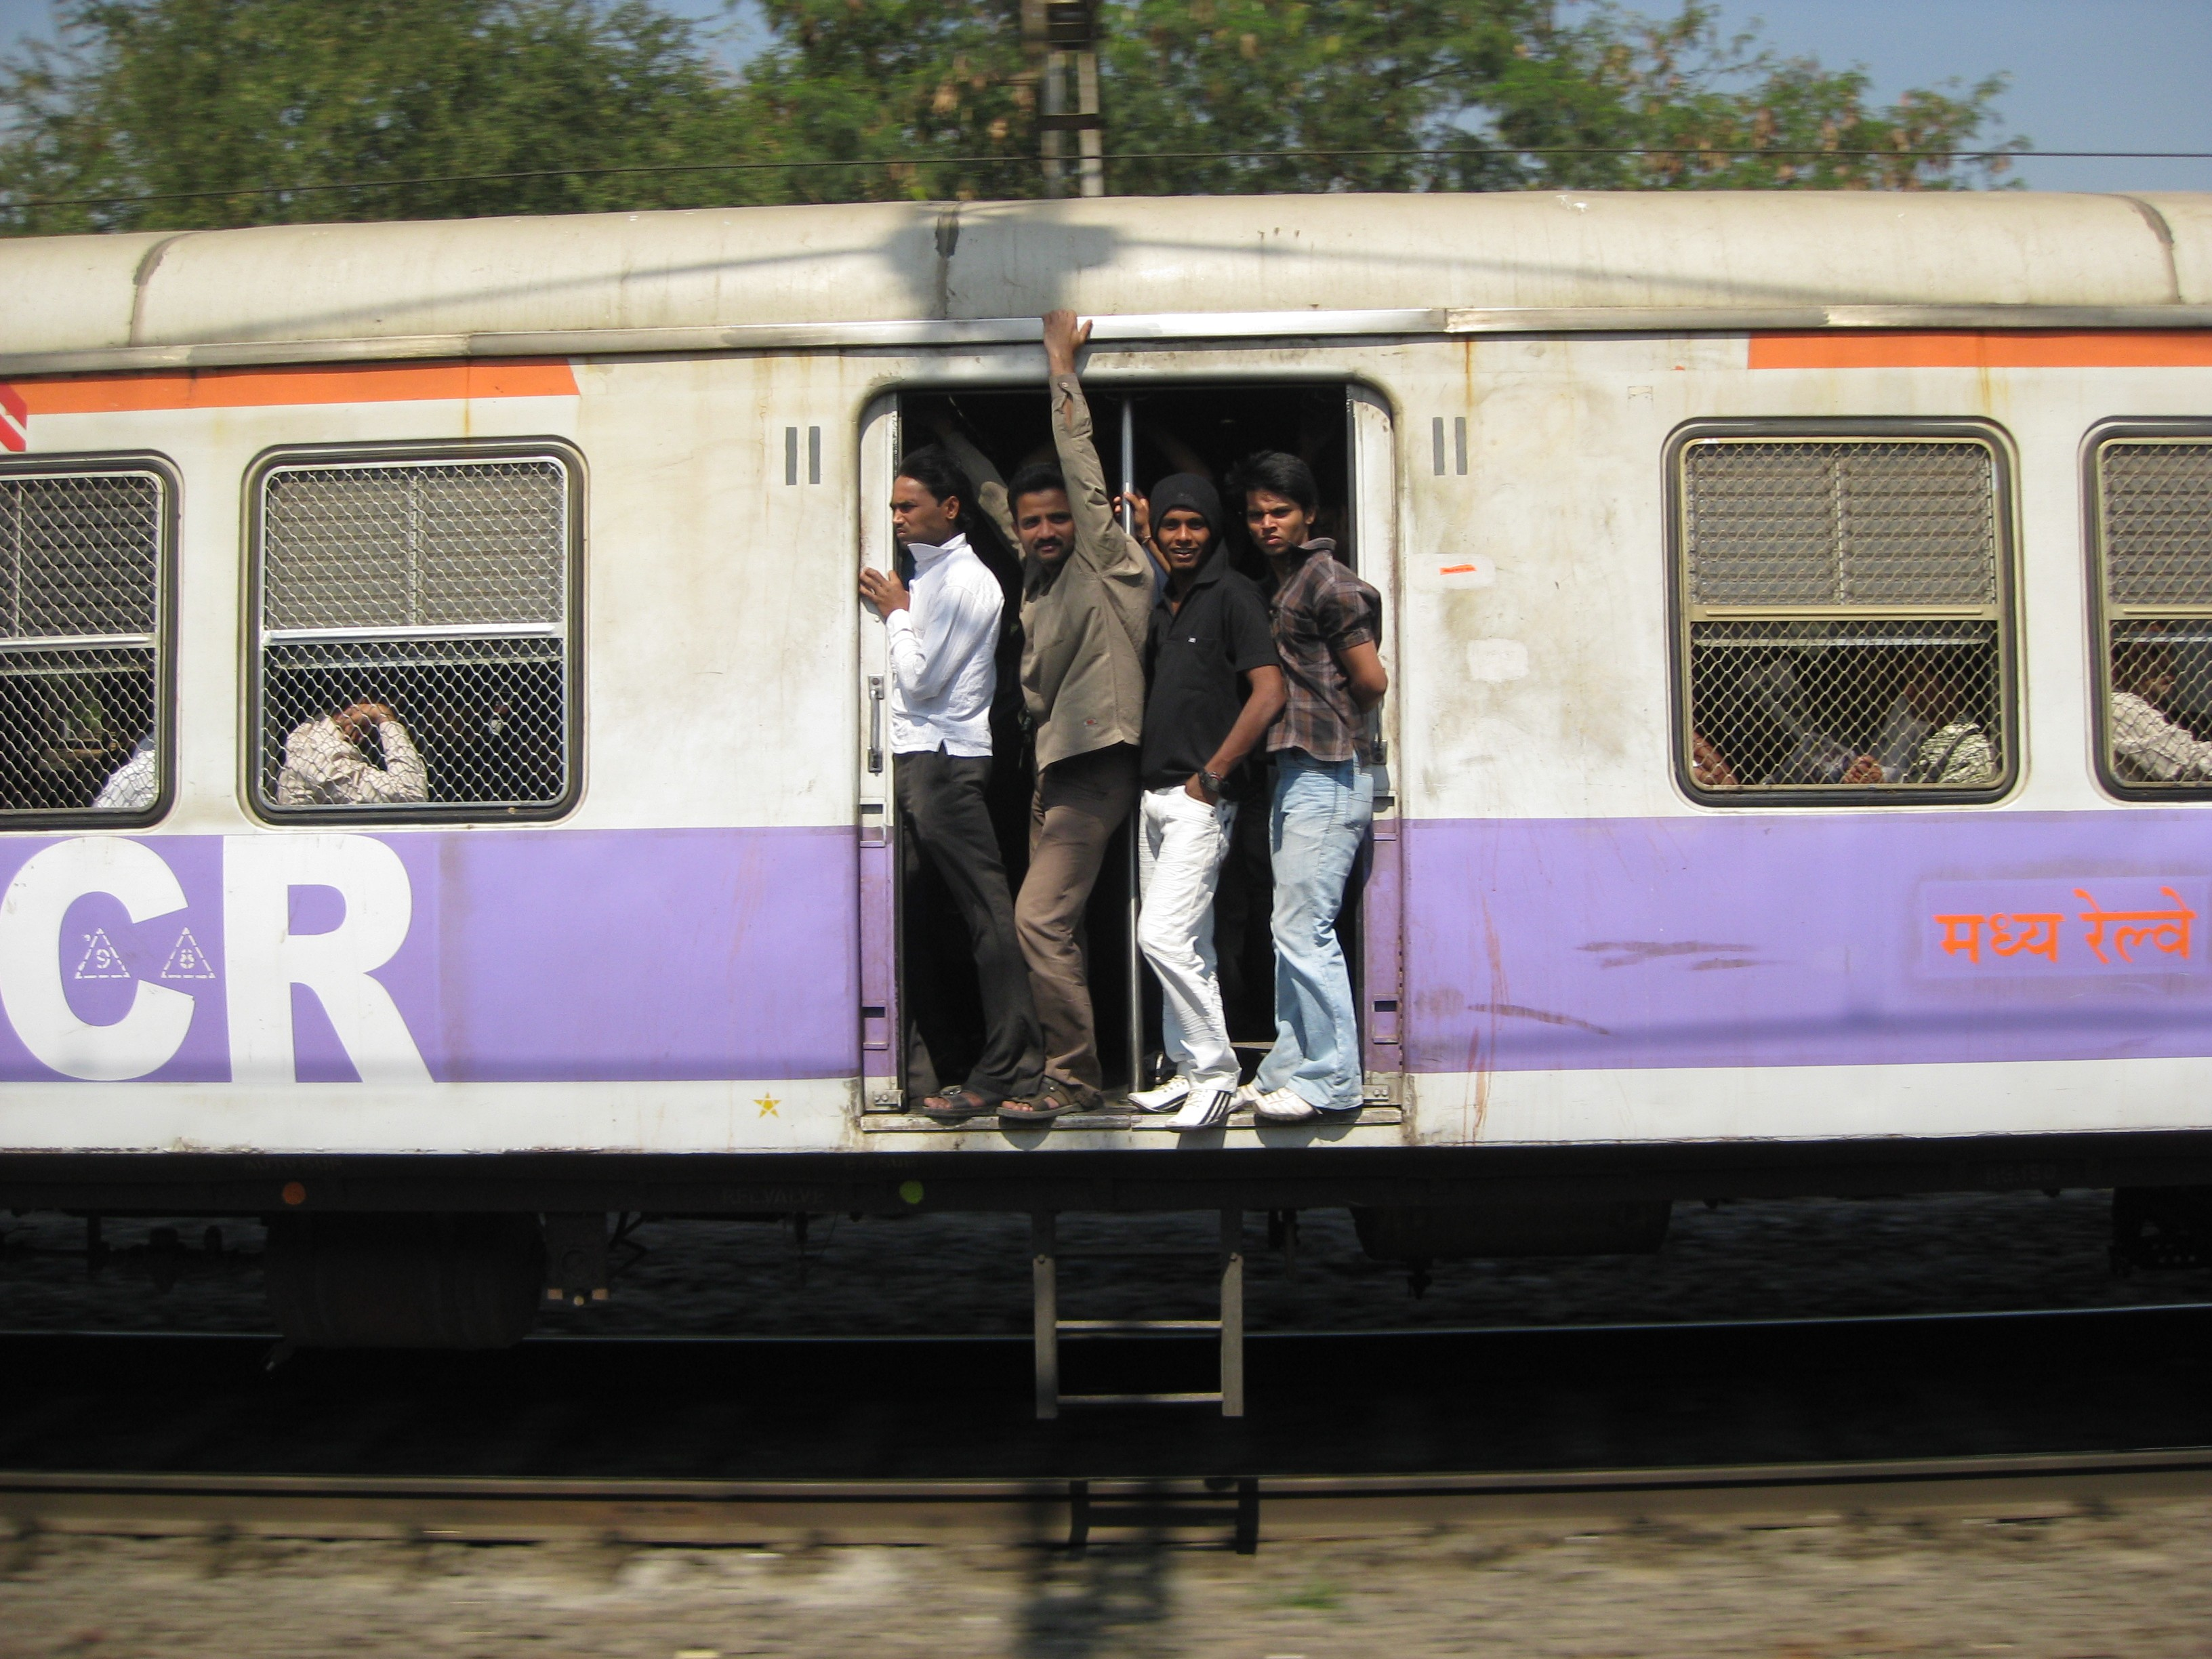 overcrowded train in India